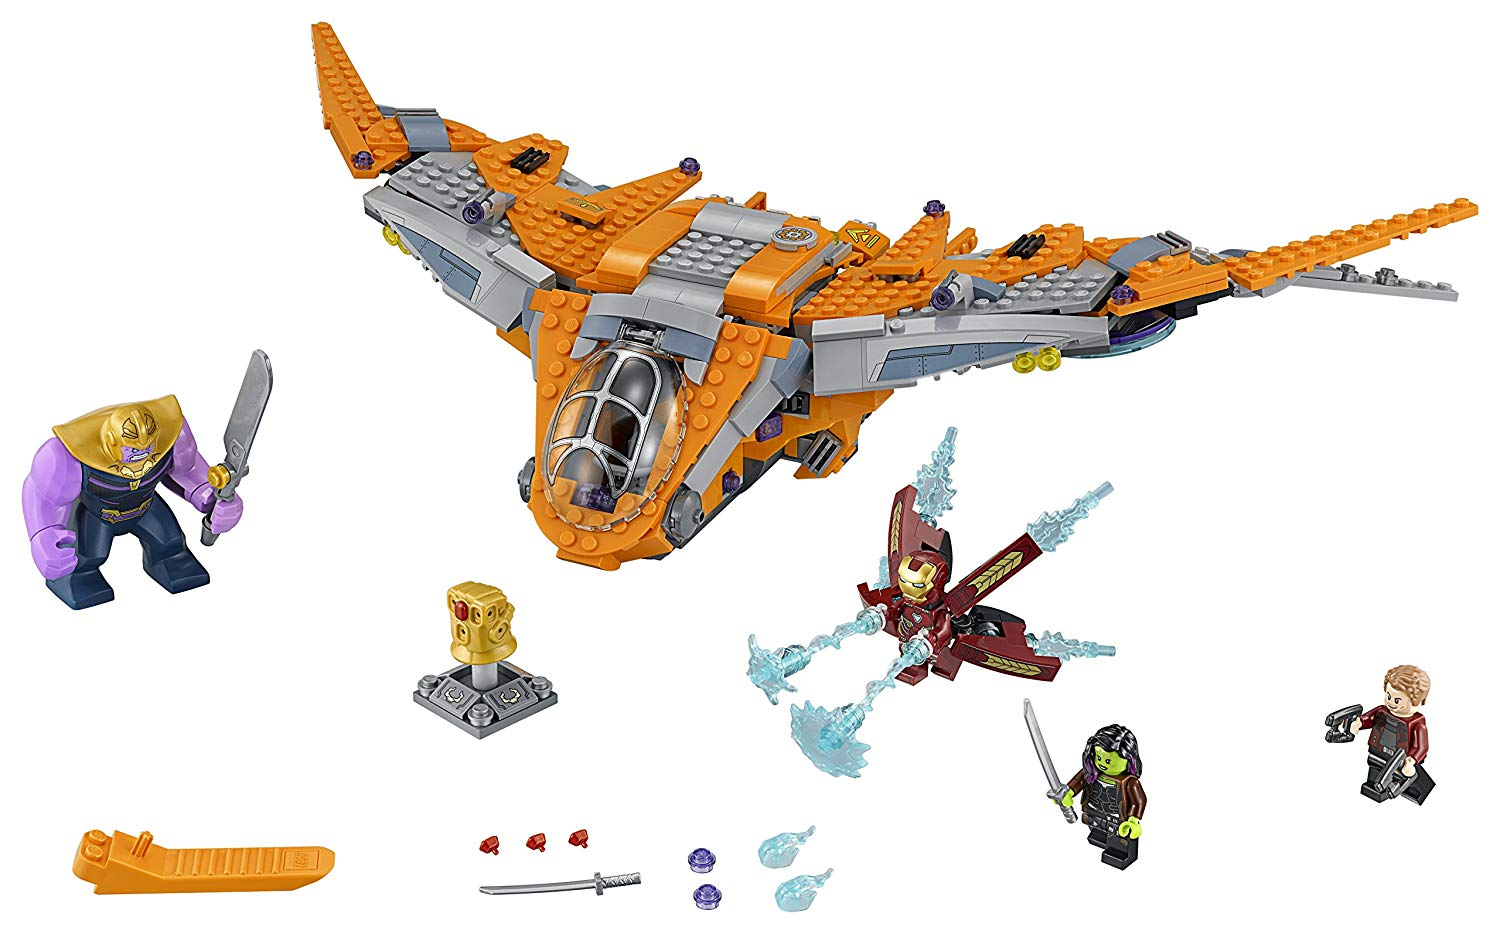 Конструктор Мстители (LEGO Marvel Super Heroes Avengers: Infinity War Thanos: Ultimate Battle 76107 Guardians of the Galaxy Starship Action Construction Toy and Building Kit)